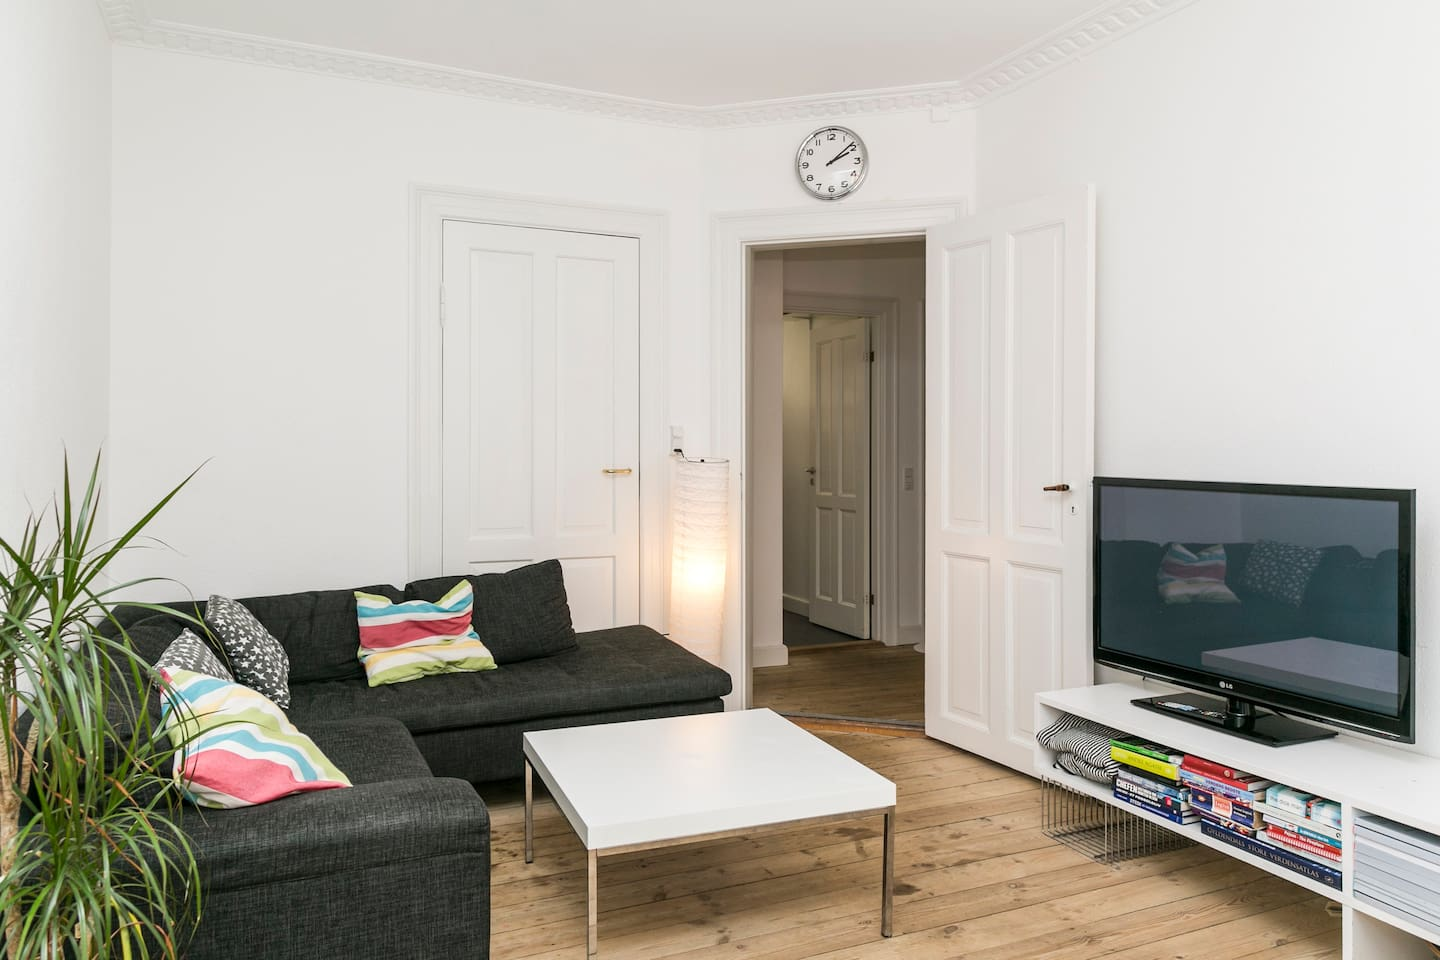 The spacious living room - It's all yours! 1